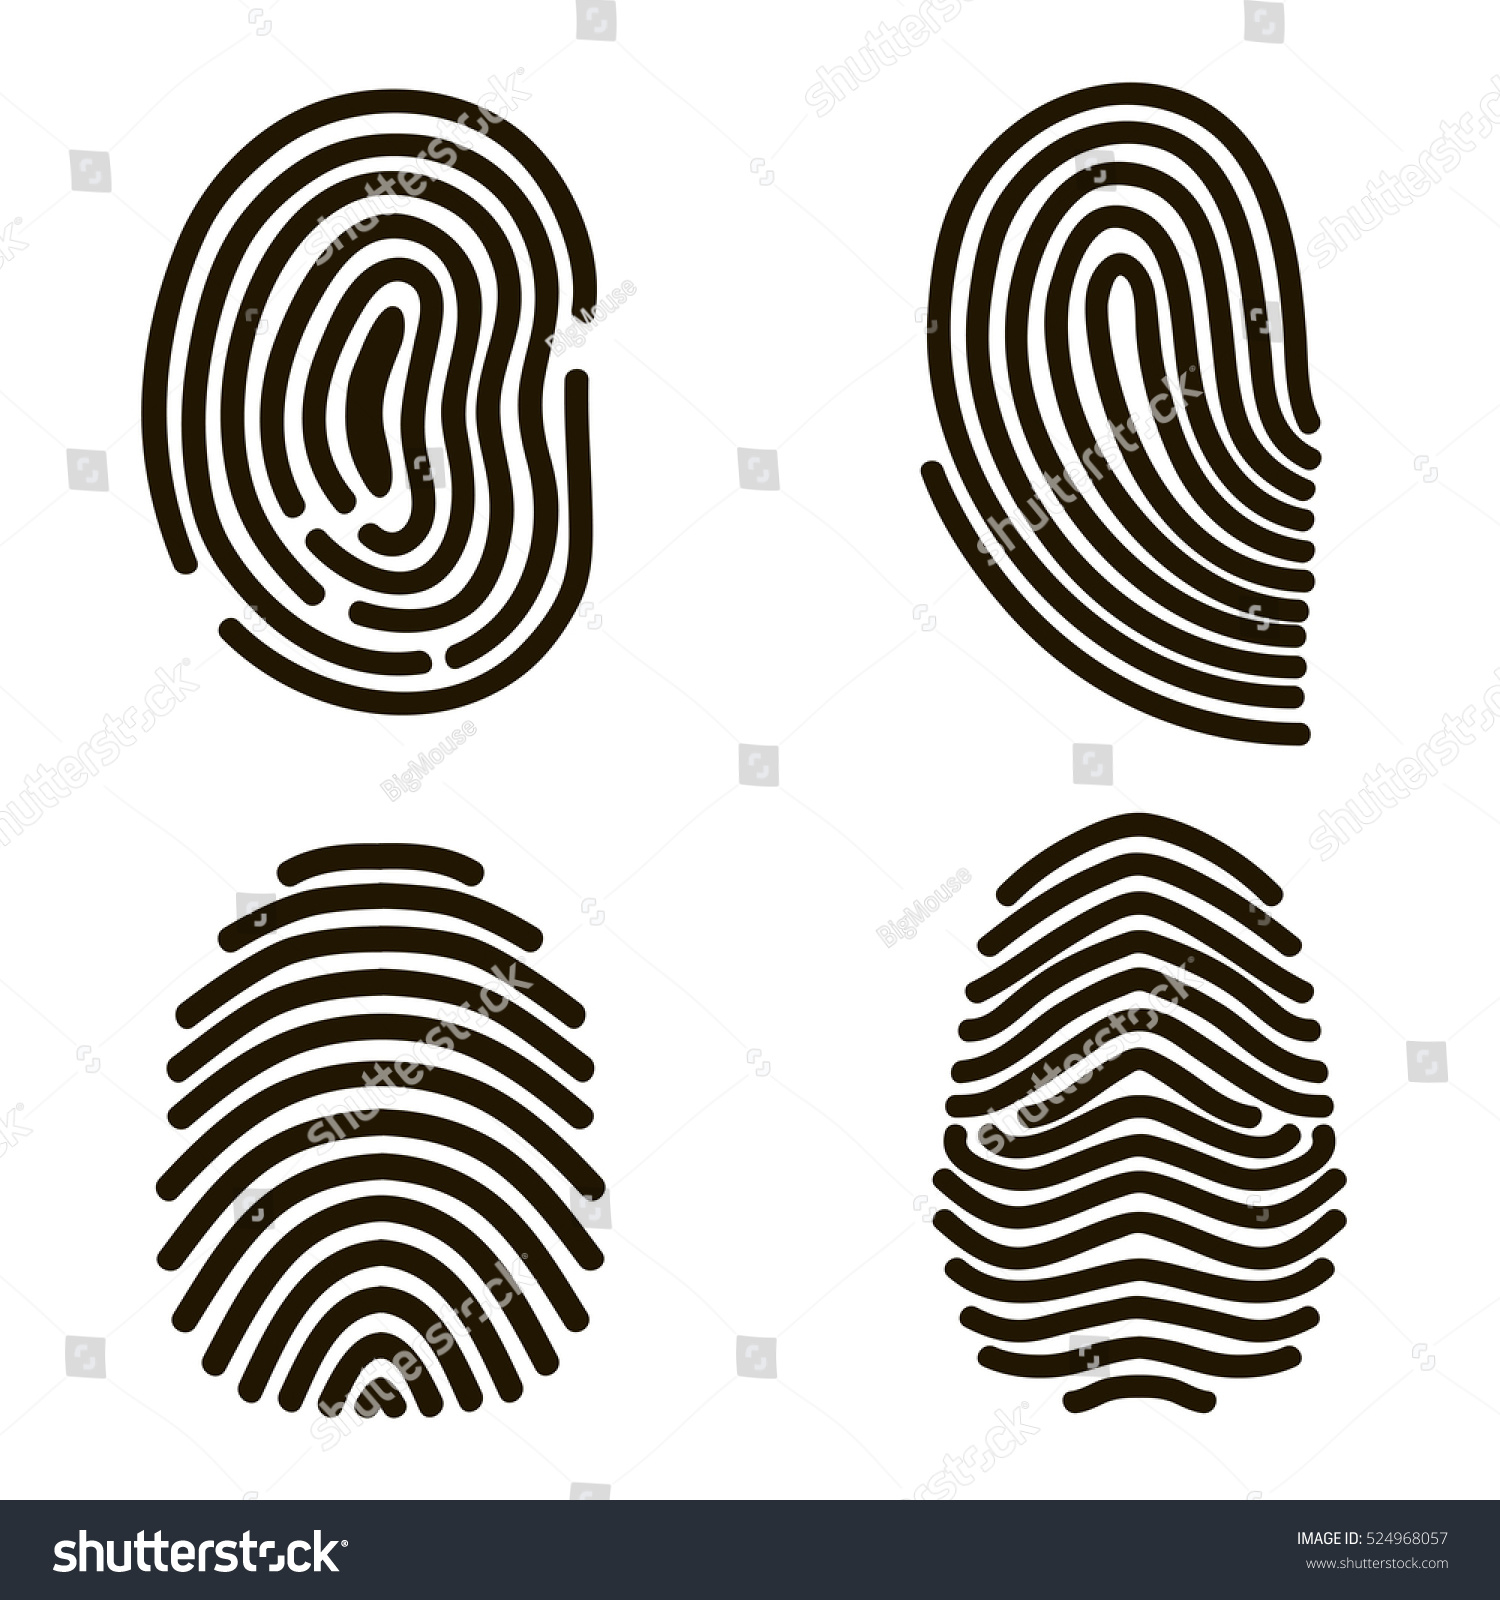 personality is a fingerprint to a persons identity An identity-authentication system using fingerprints  establish the identity of a person: 1) authentication (verifica-  all of the people in this image are the .